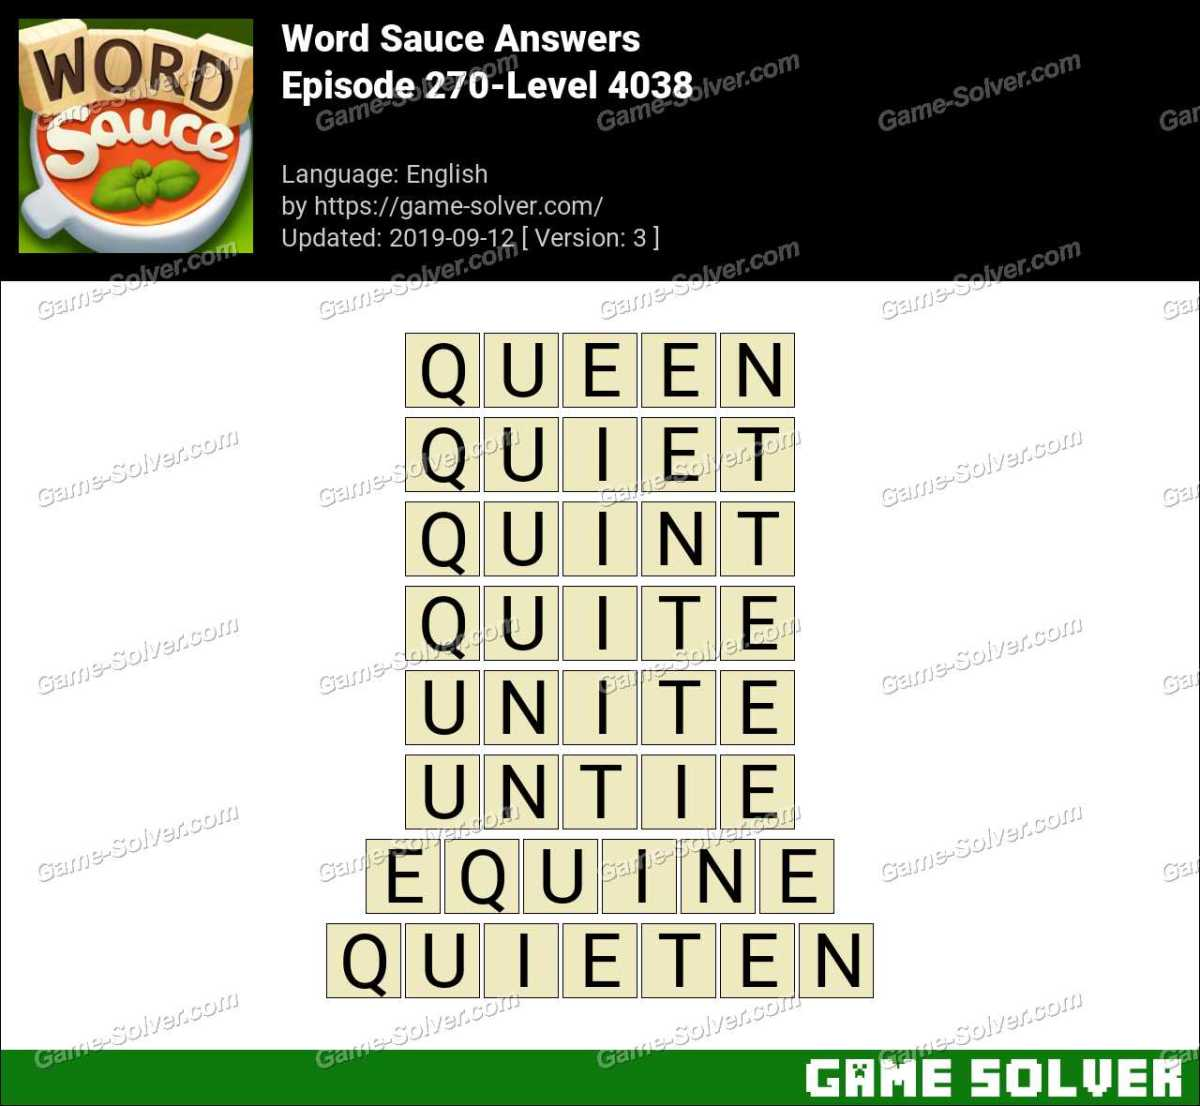 Word Sauce Episode 270-Level 4038 Answers